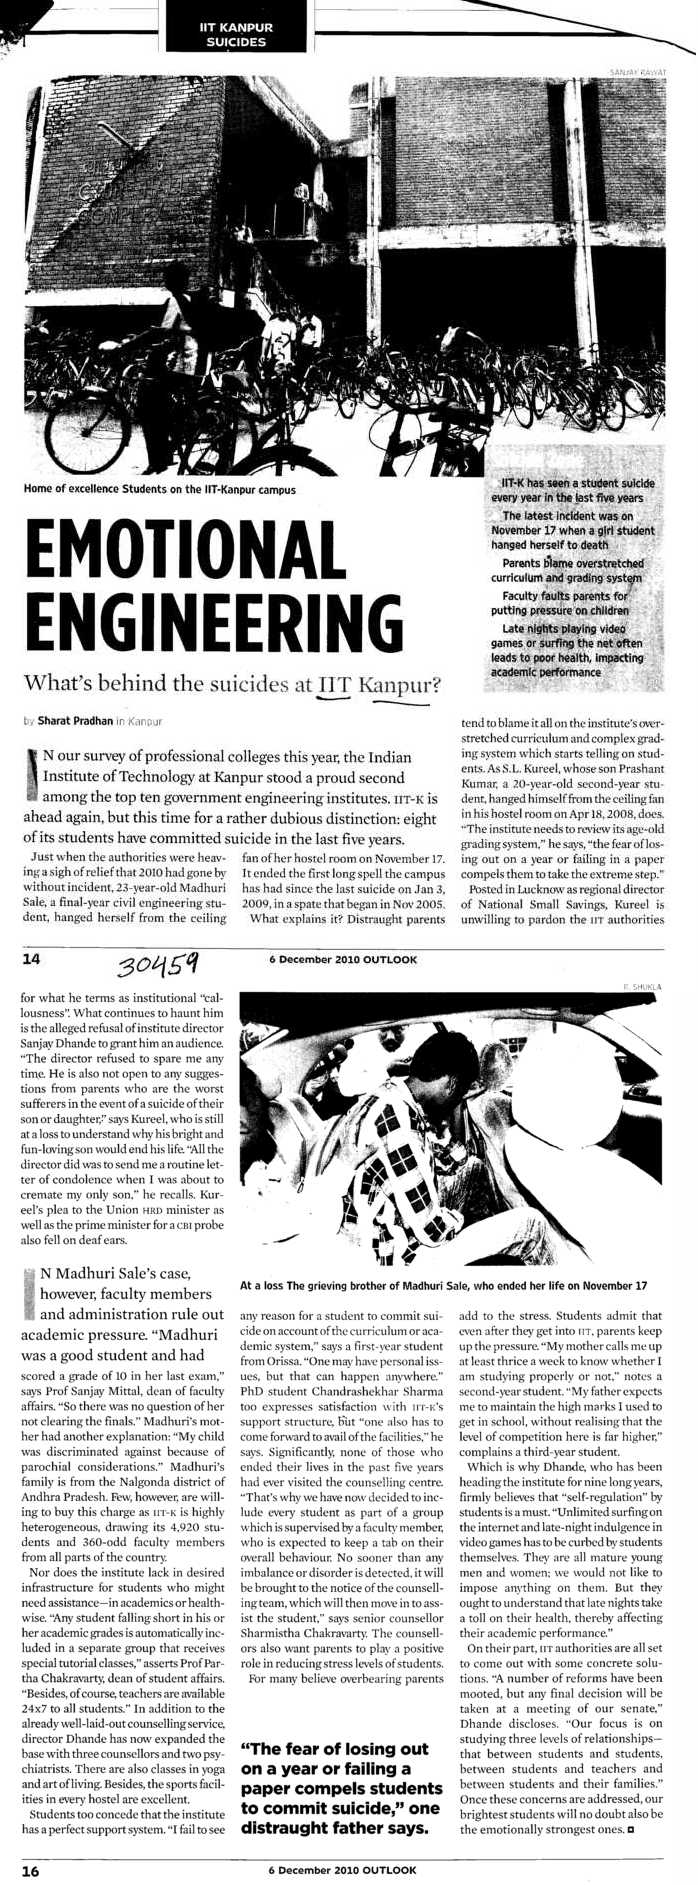 Emotional Engineering (Indian Institute of Technology (IITK))